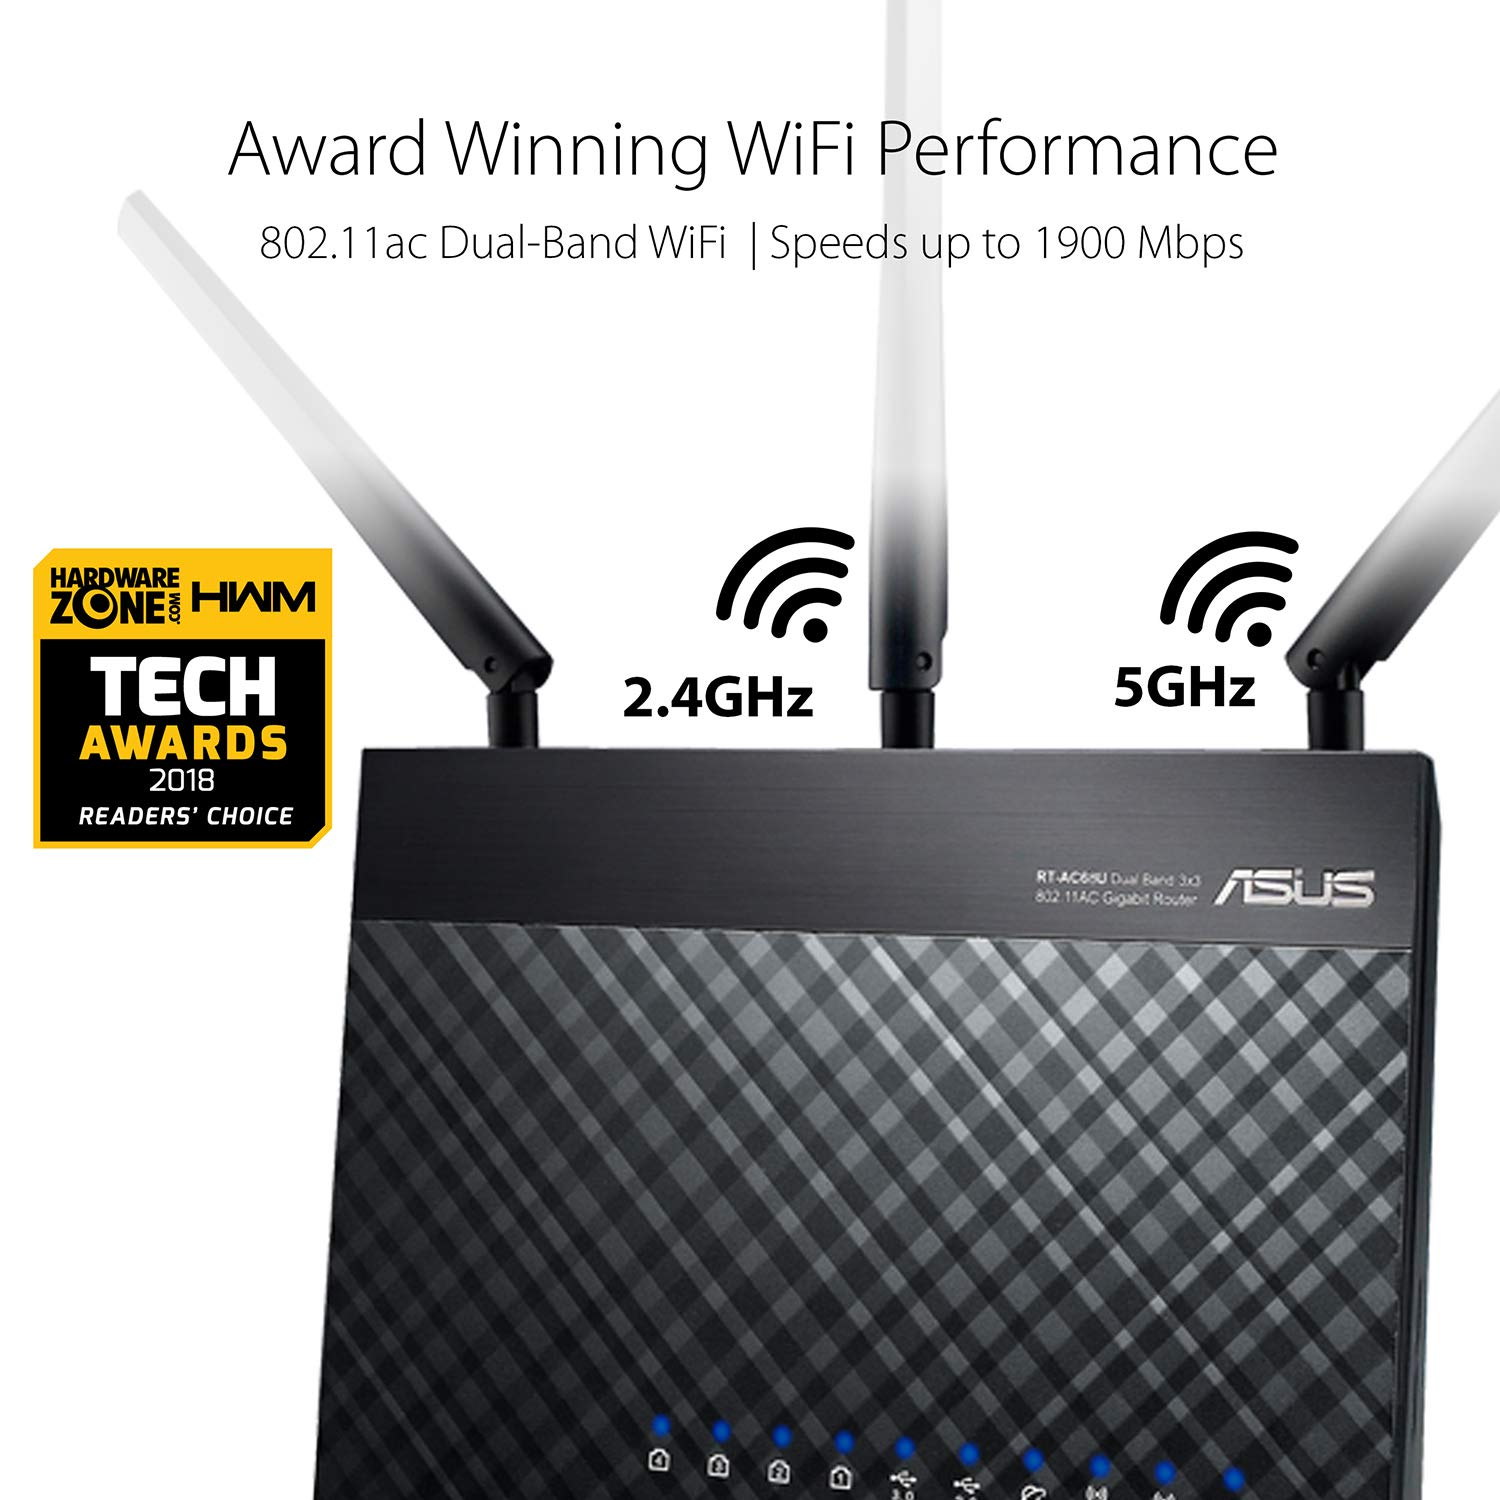 Asus AC1900 Dual Band Gigabit WiFi Router with MU-Mimo, Aimesh for Mesh WIFI System, Aiprotection Network Security Powered by Trend Micro, Adaptive Qos and Parental Control (RT-AC68U) 61i6itY8atL